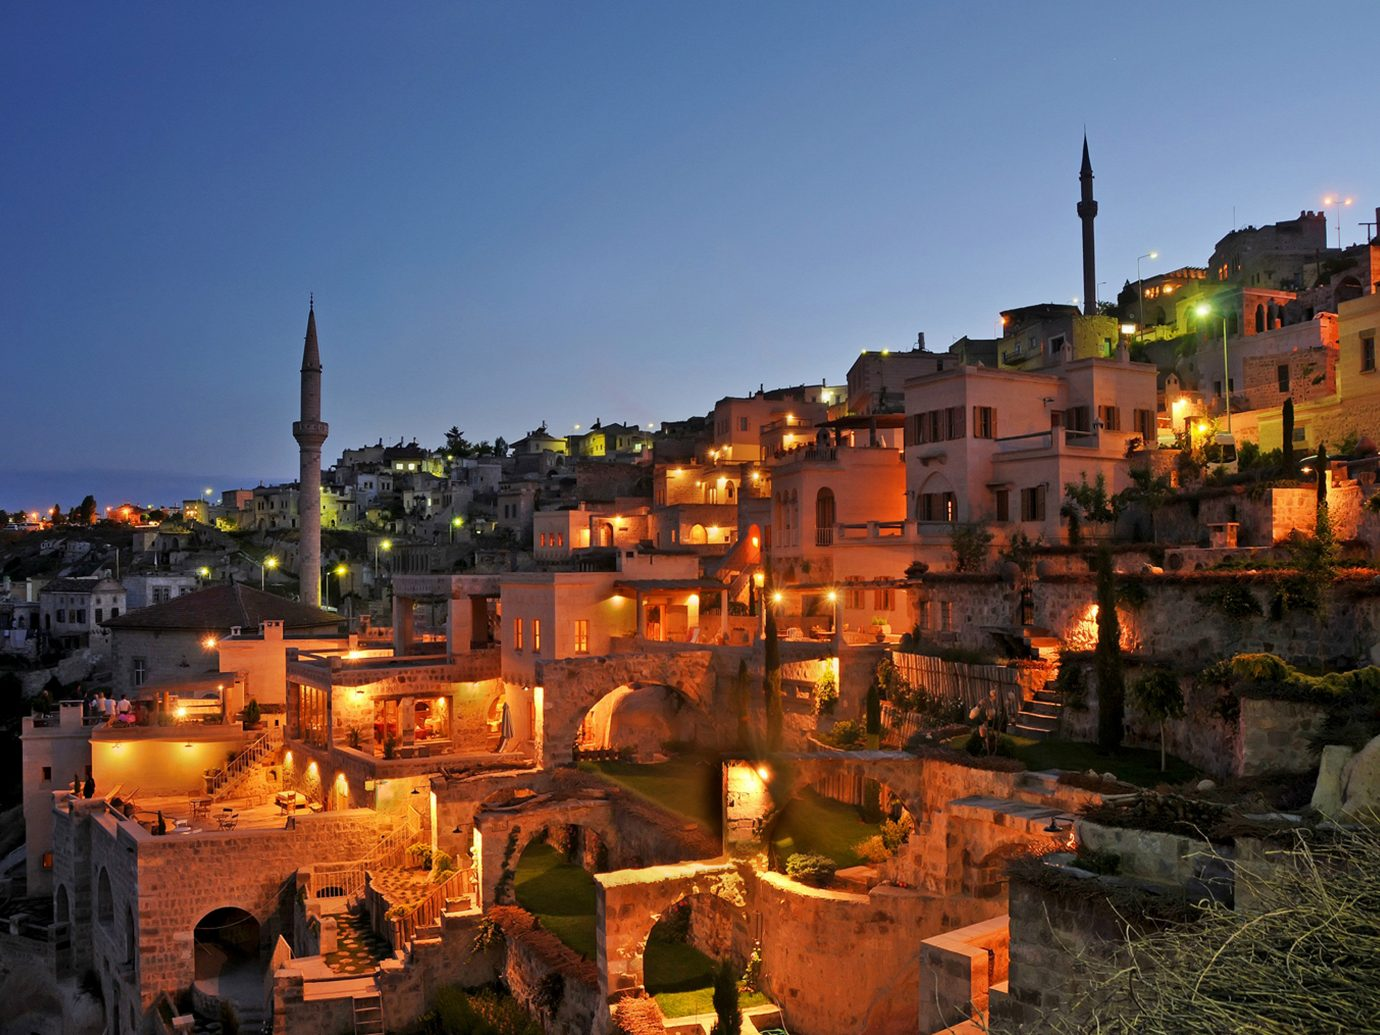 Argos in Cappadocia night shot with lit up buildings